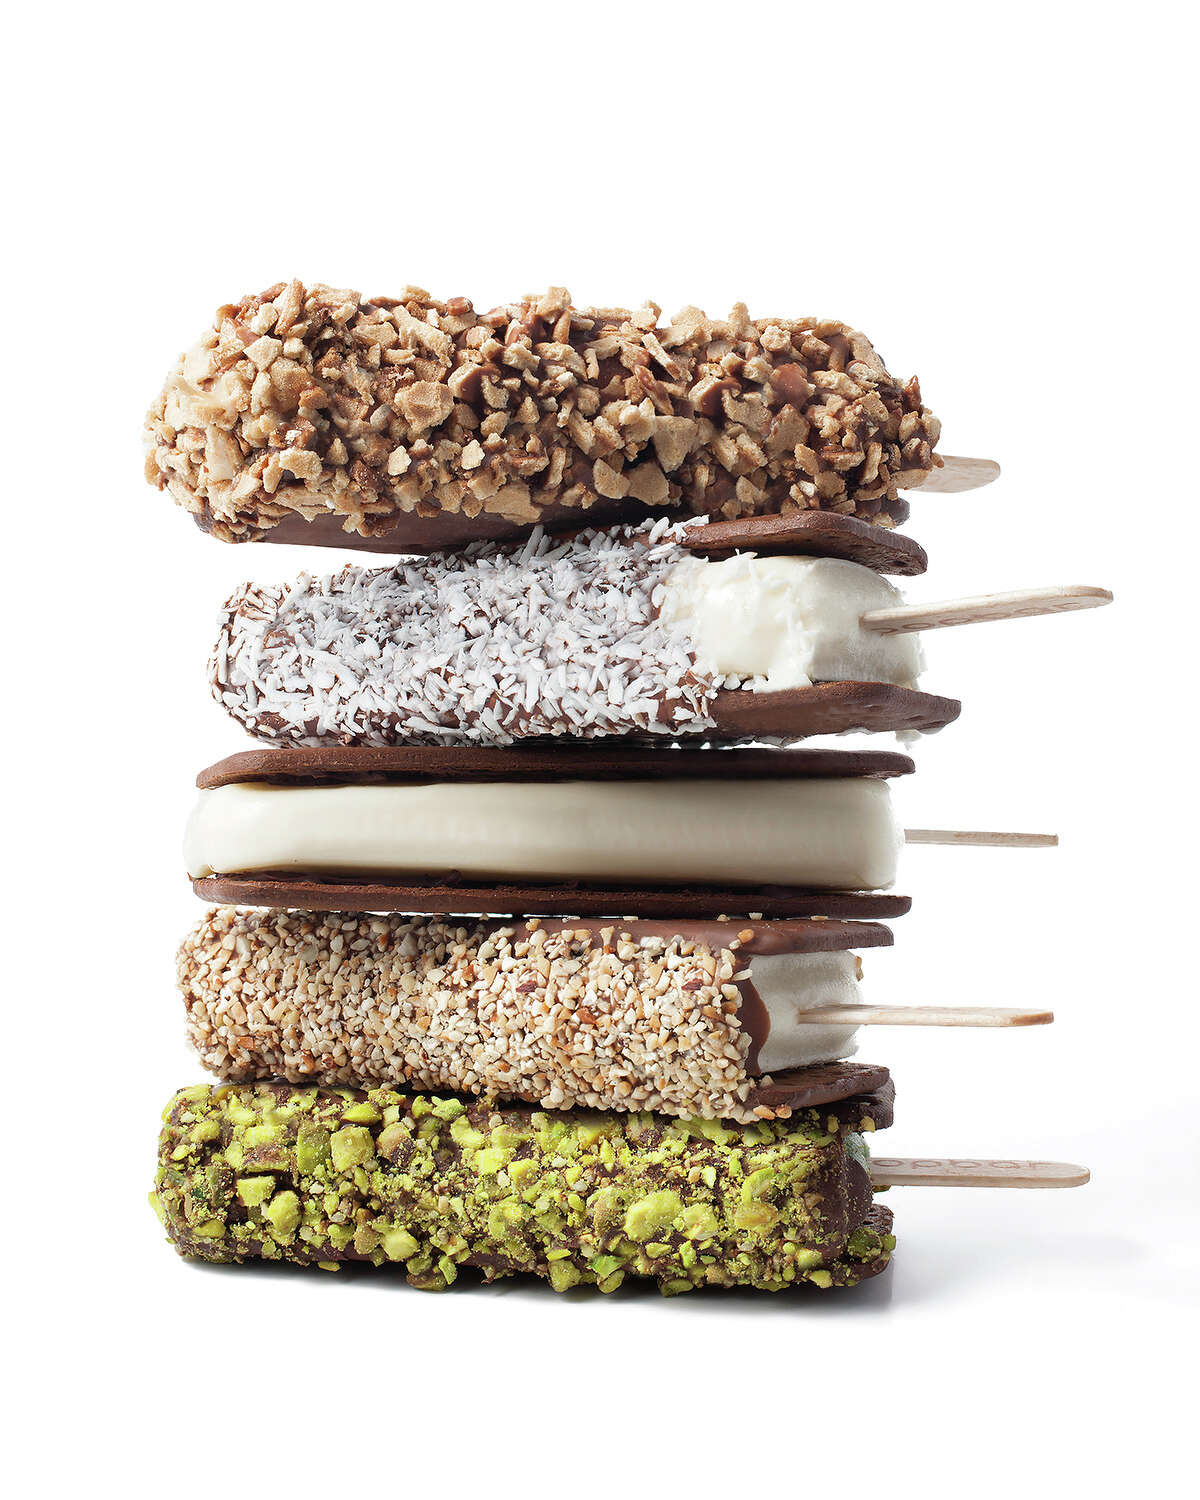 Popbar serves all natural, handcrafted gelato, sorbet and yogurt on a stick.